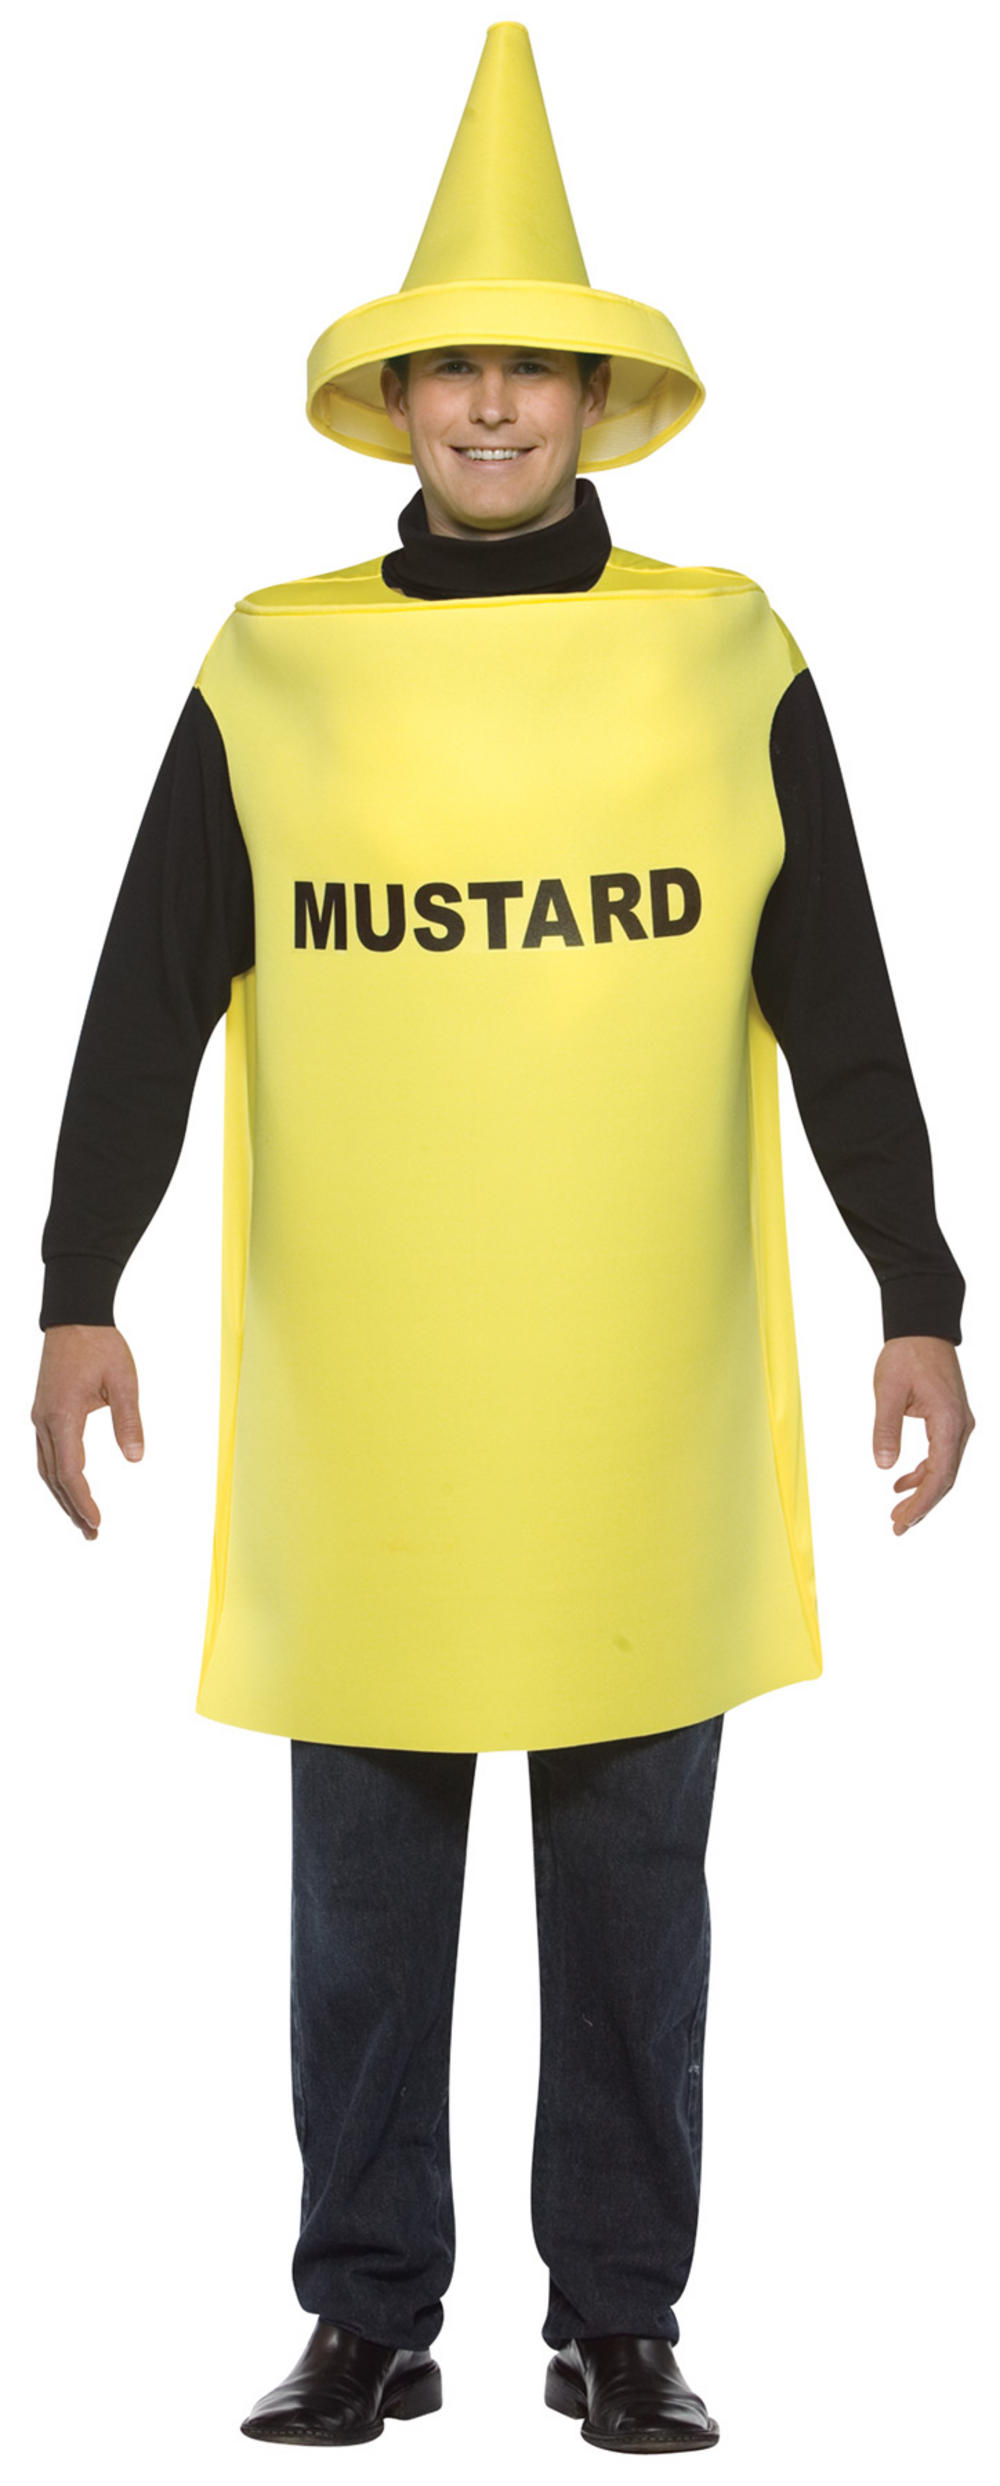 Mustard Adults Costume